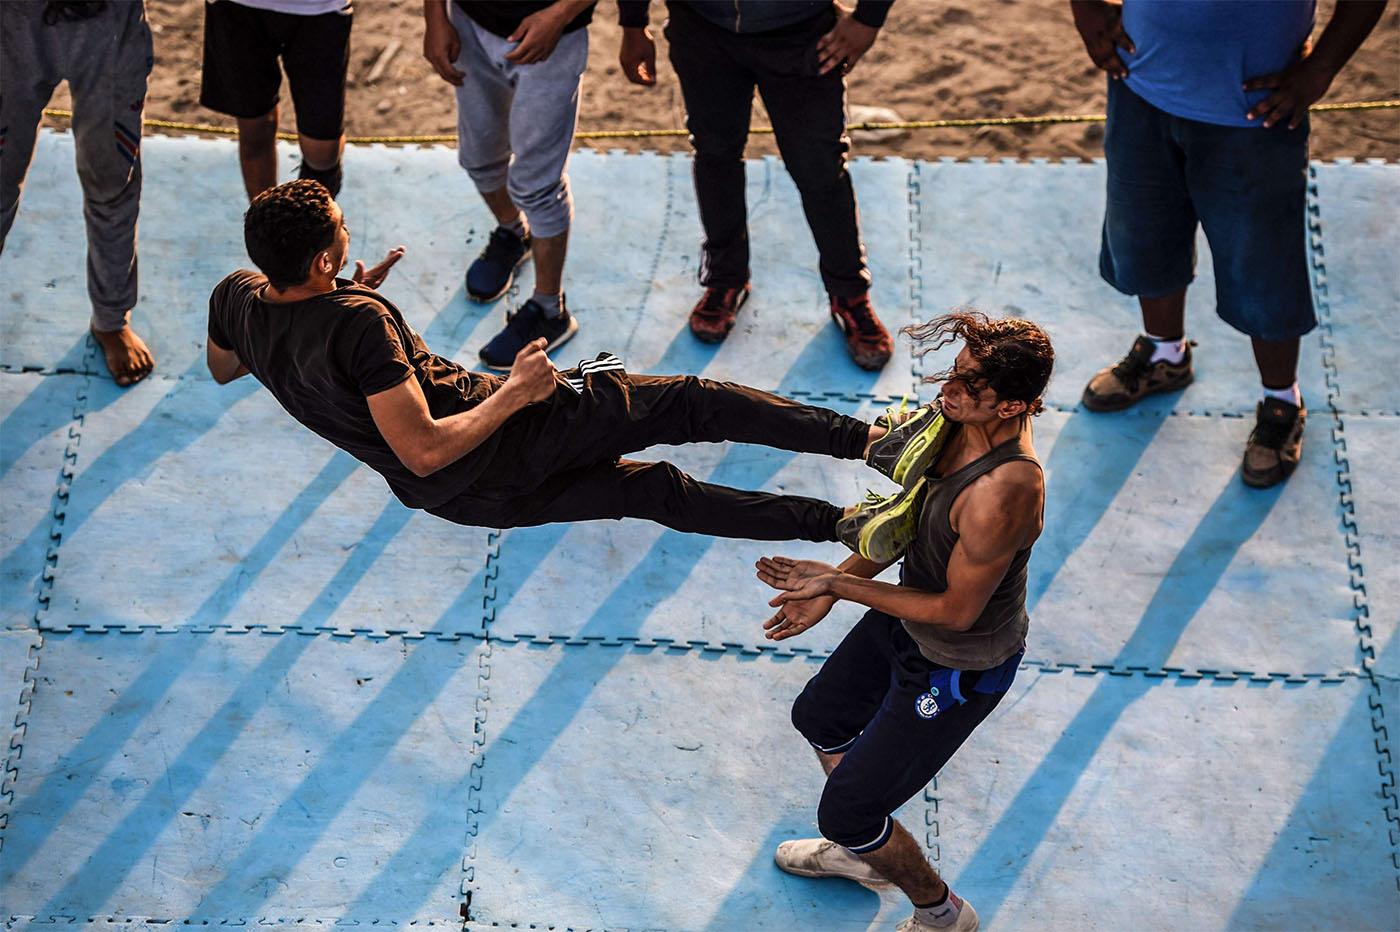 Members of the self-declared Egyptian Wrestling Federation (EWR) train in a ring during a session in the village of Serapeum